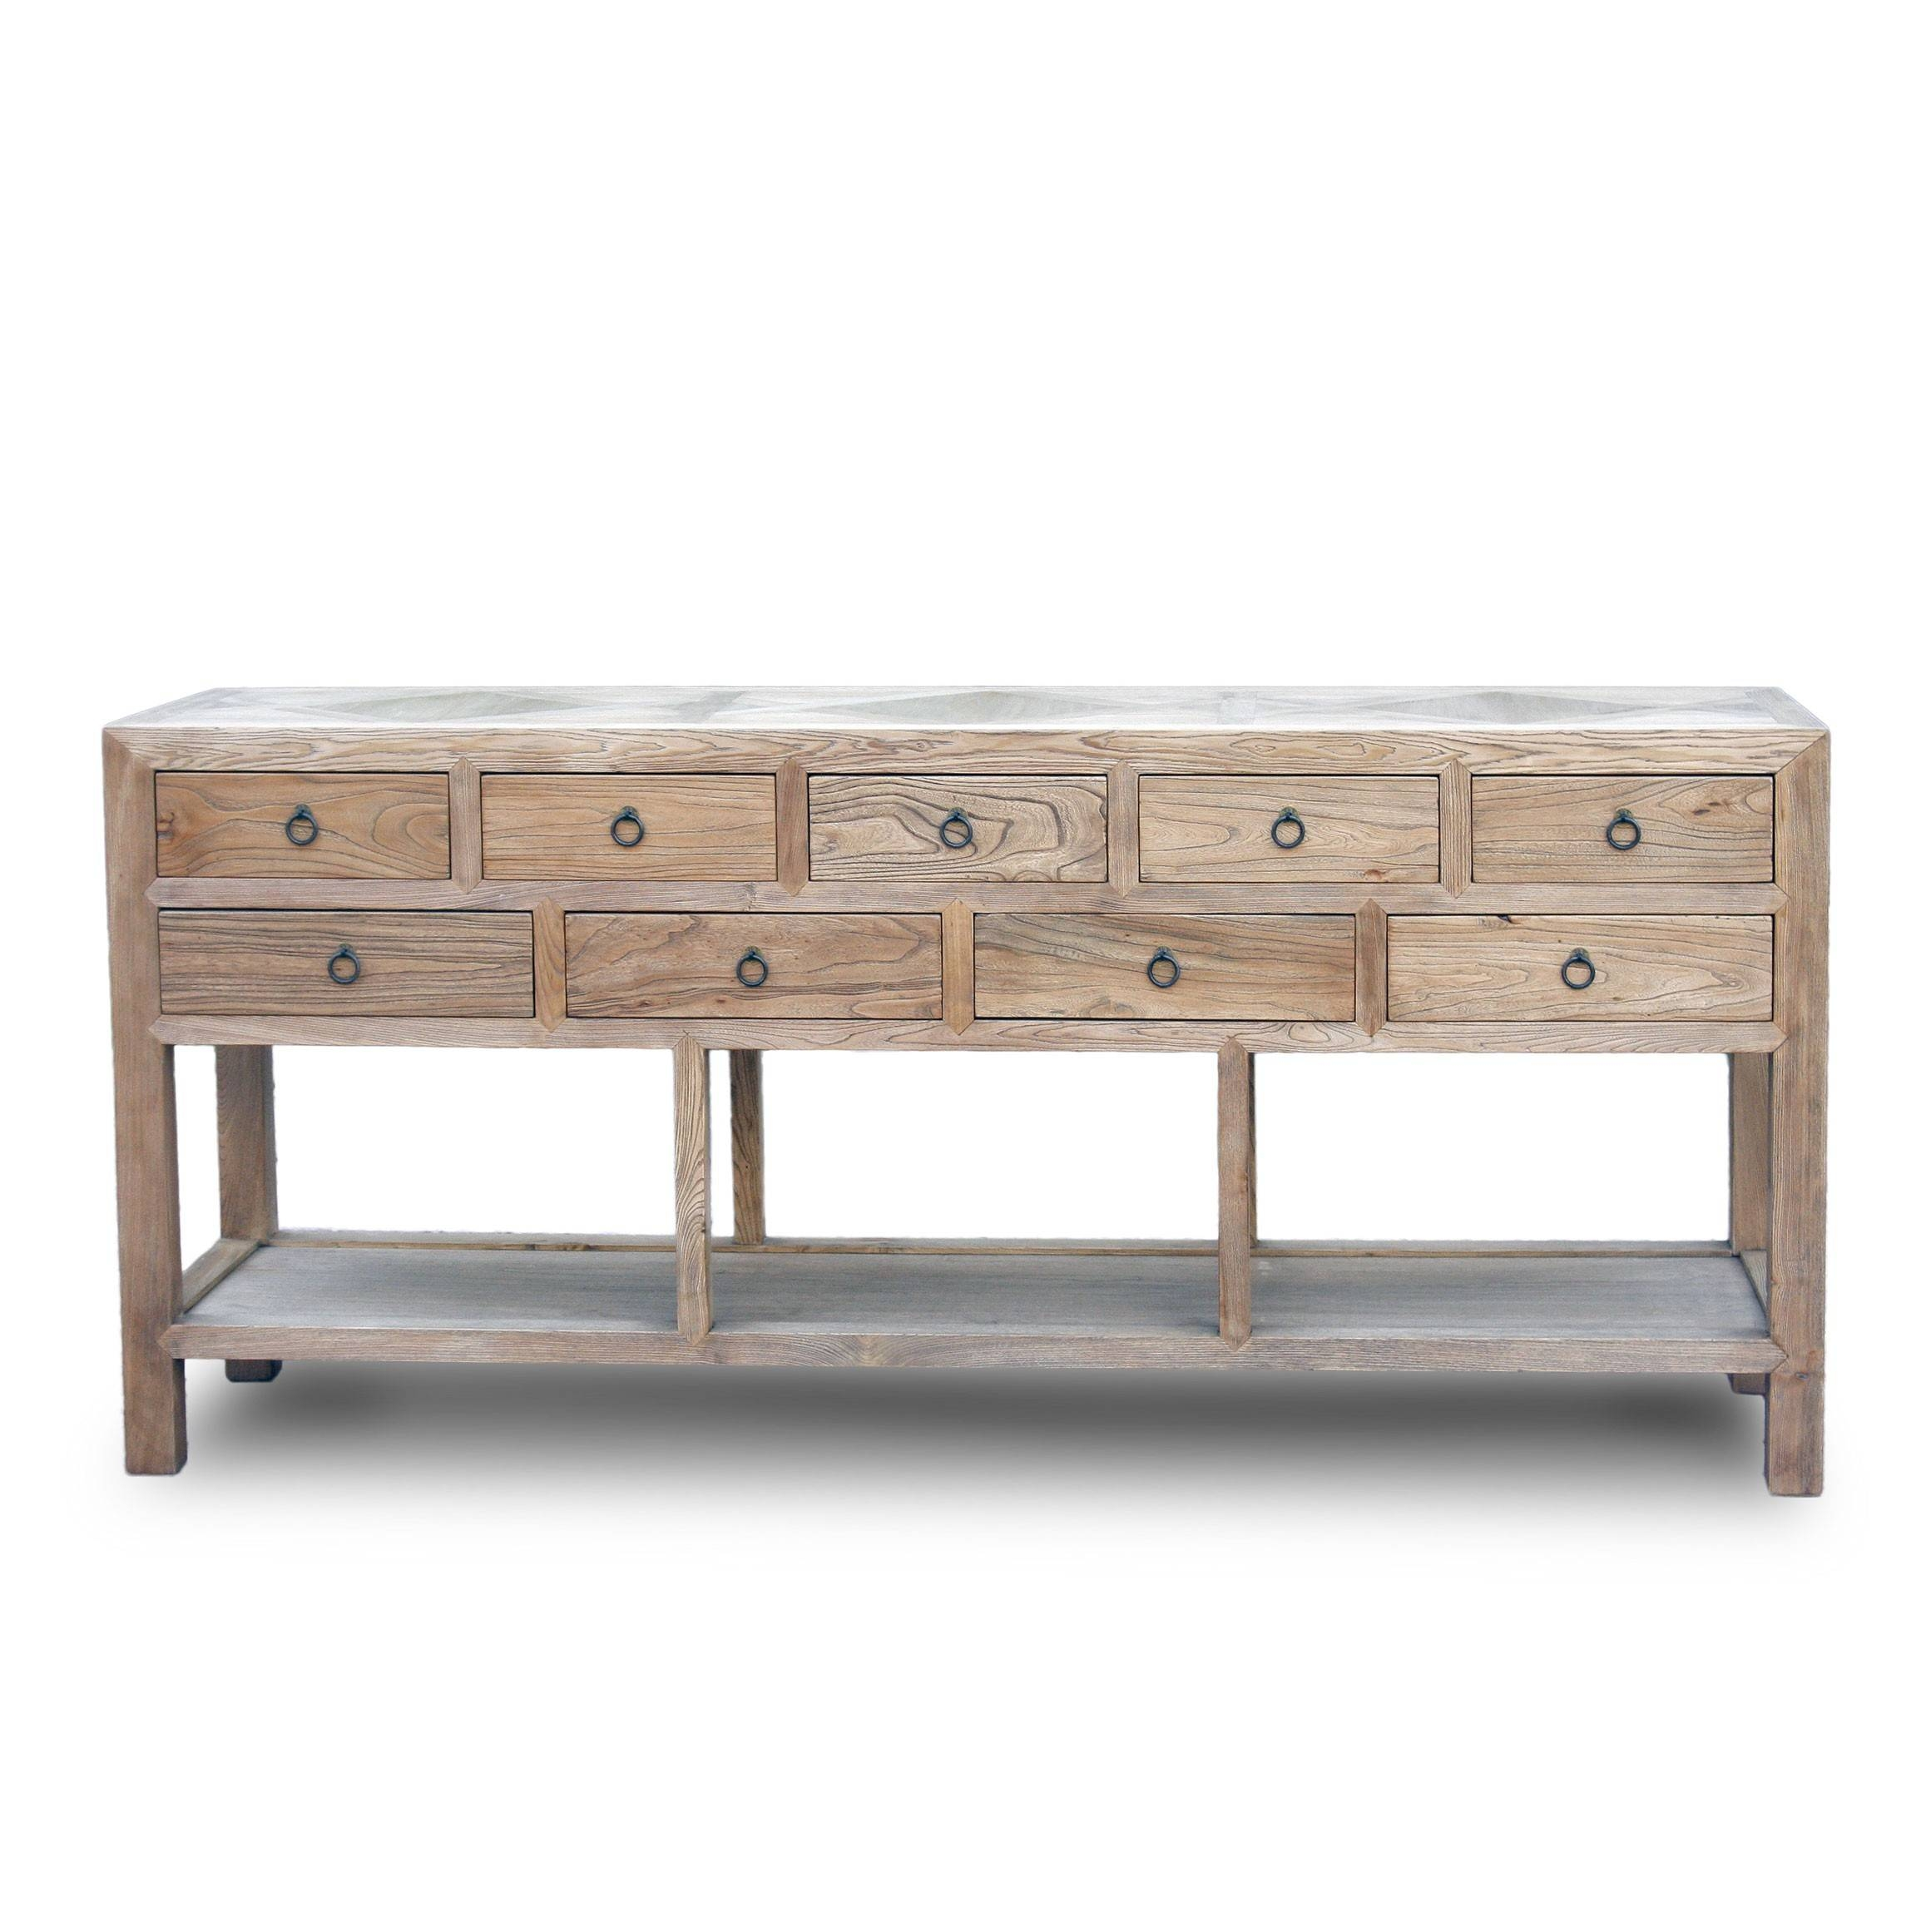 Buffets, Sideboard, Credenzas, Servers And Hutches – Acf China With Narrow Sideboard (#3 of 20)